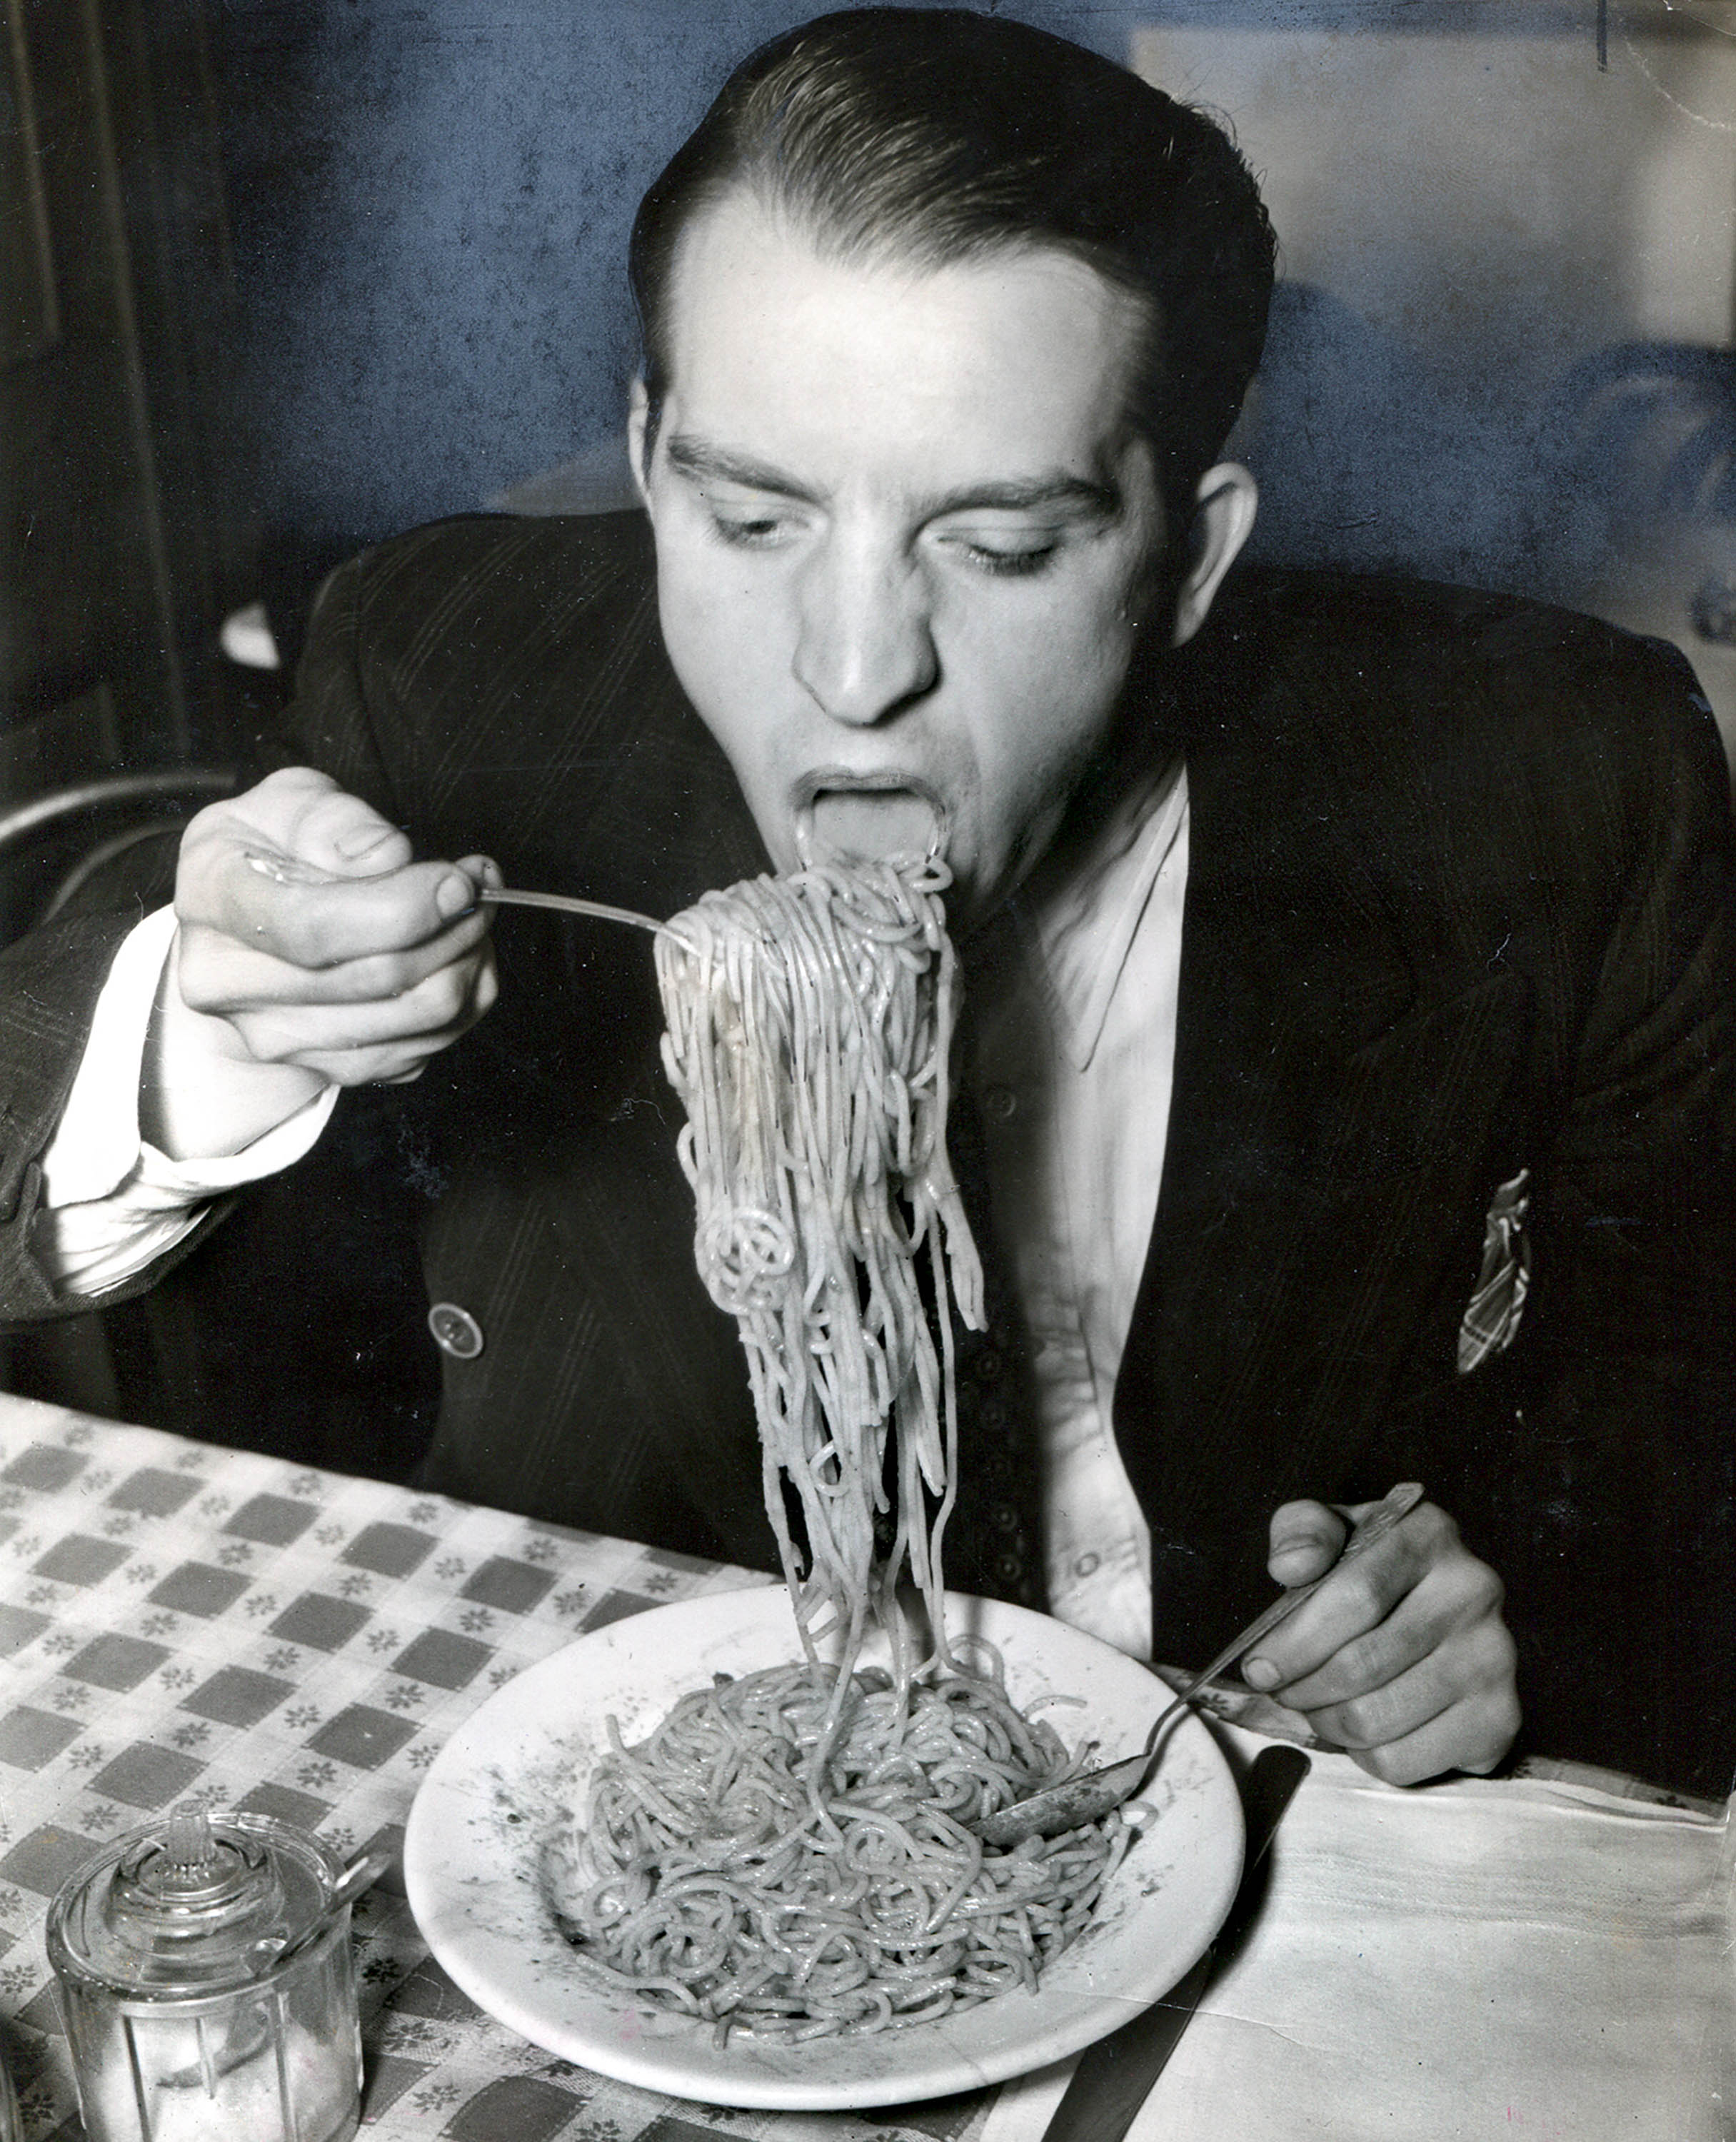 Phillip J. Stazzone is on WPA and Enjoys His Favourite Food as He's Heard That the Army Doesn't Go in Very Strong for Serving Spaghetti, 1940, Weegee / International Centre of Photography, Courtesy Ira and Suzanne Richer